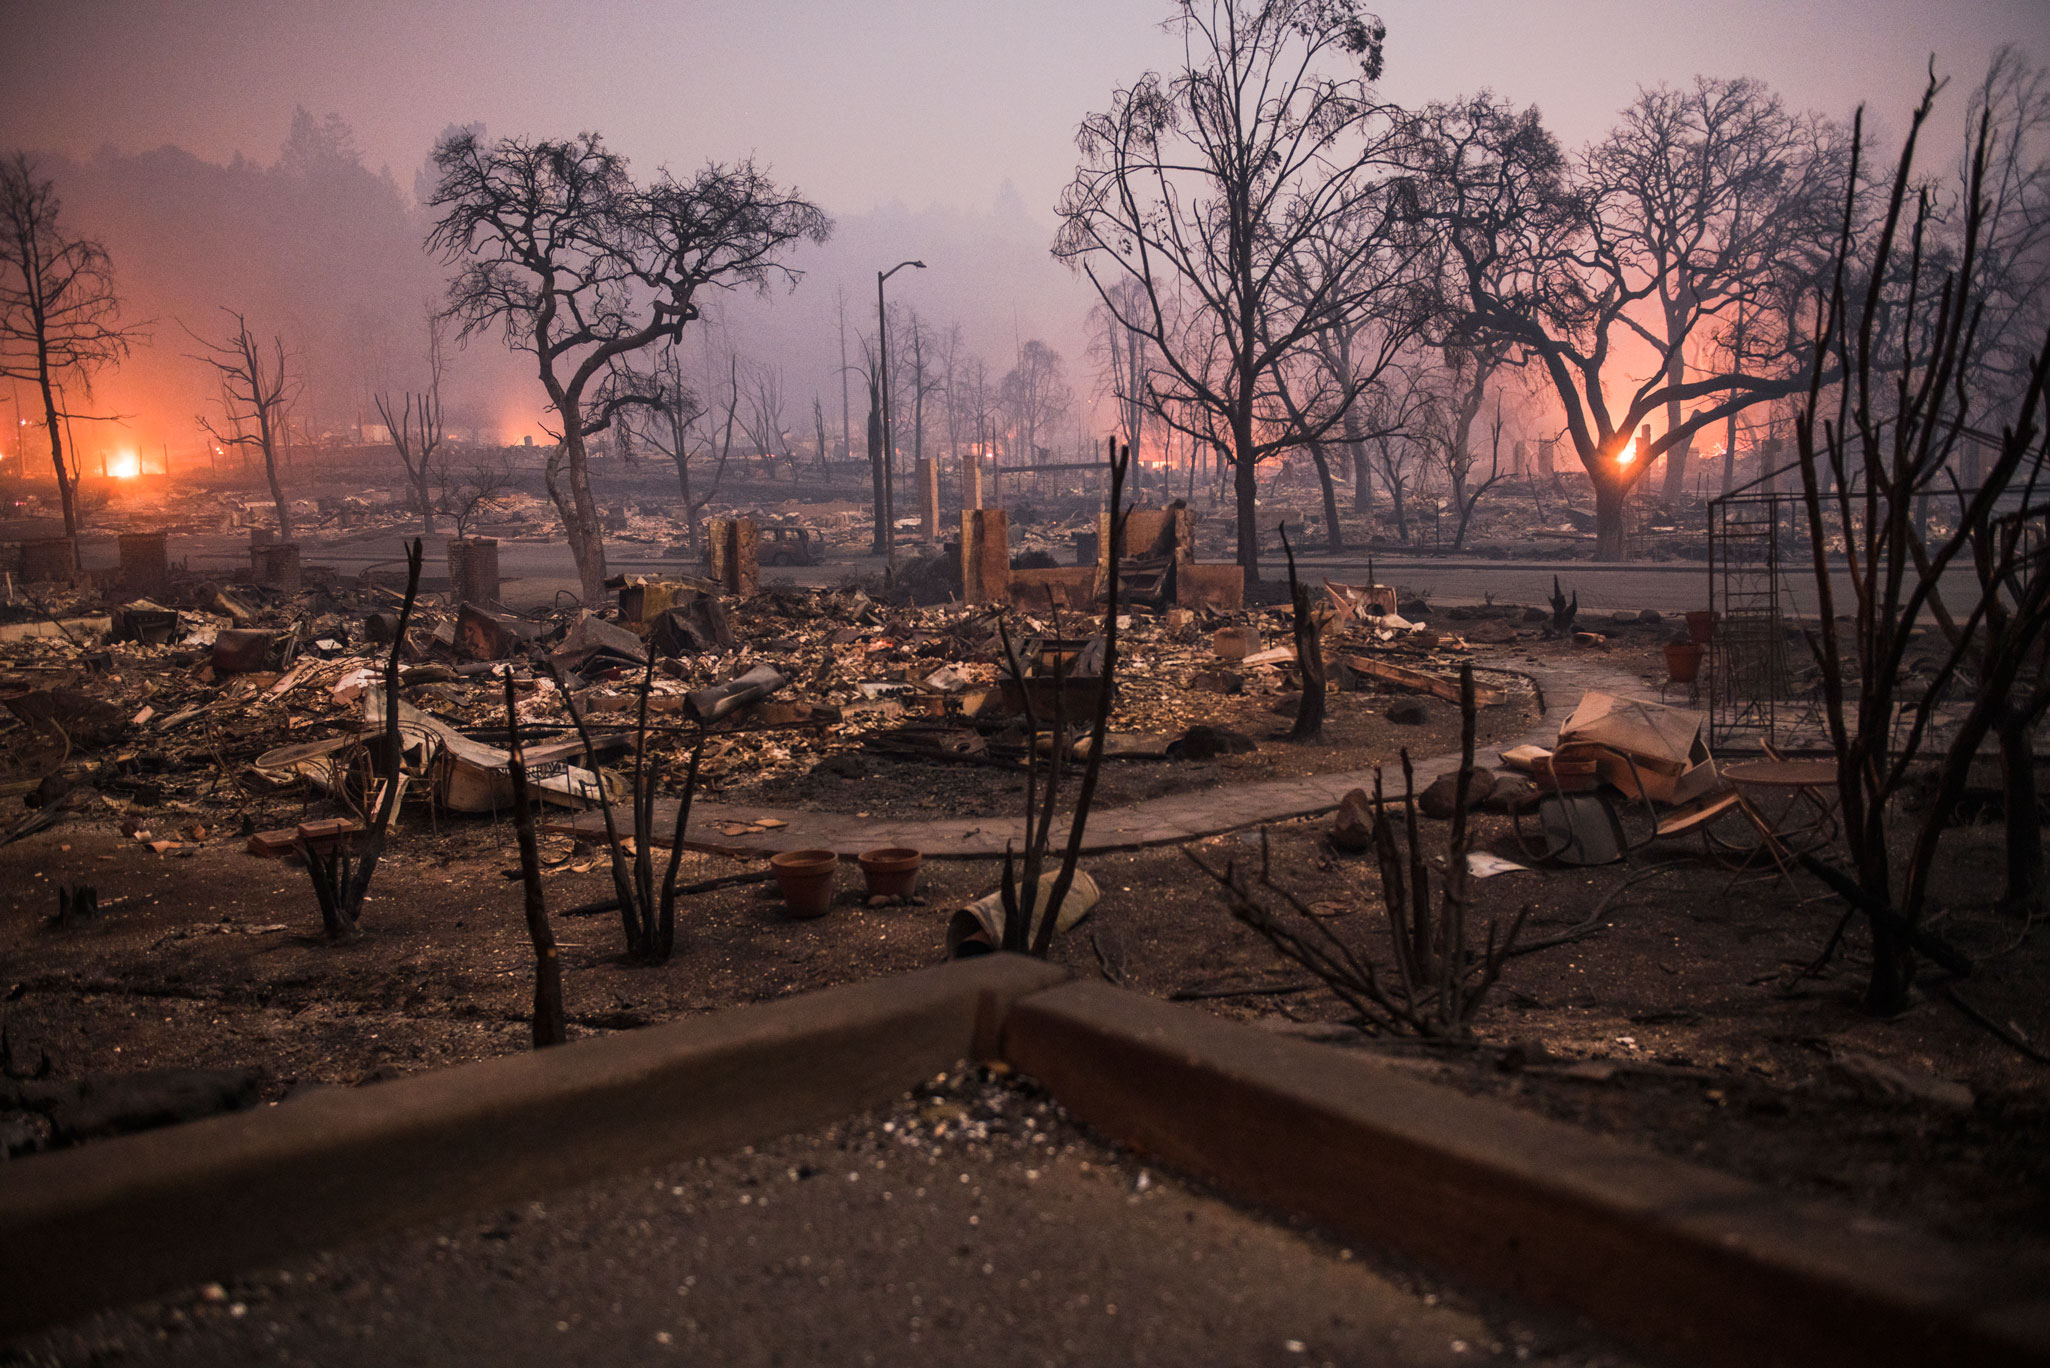 Santa Rosa, a city of 175,000 people in Sonoma County, saw widespread destruction as fires ravaged homes and businesses